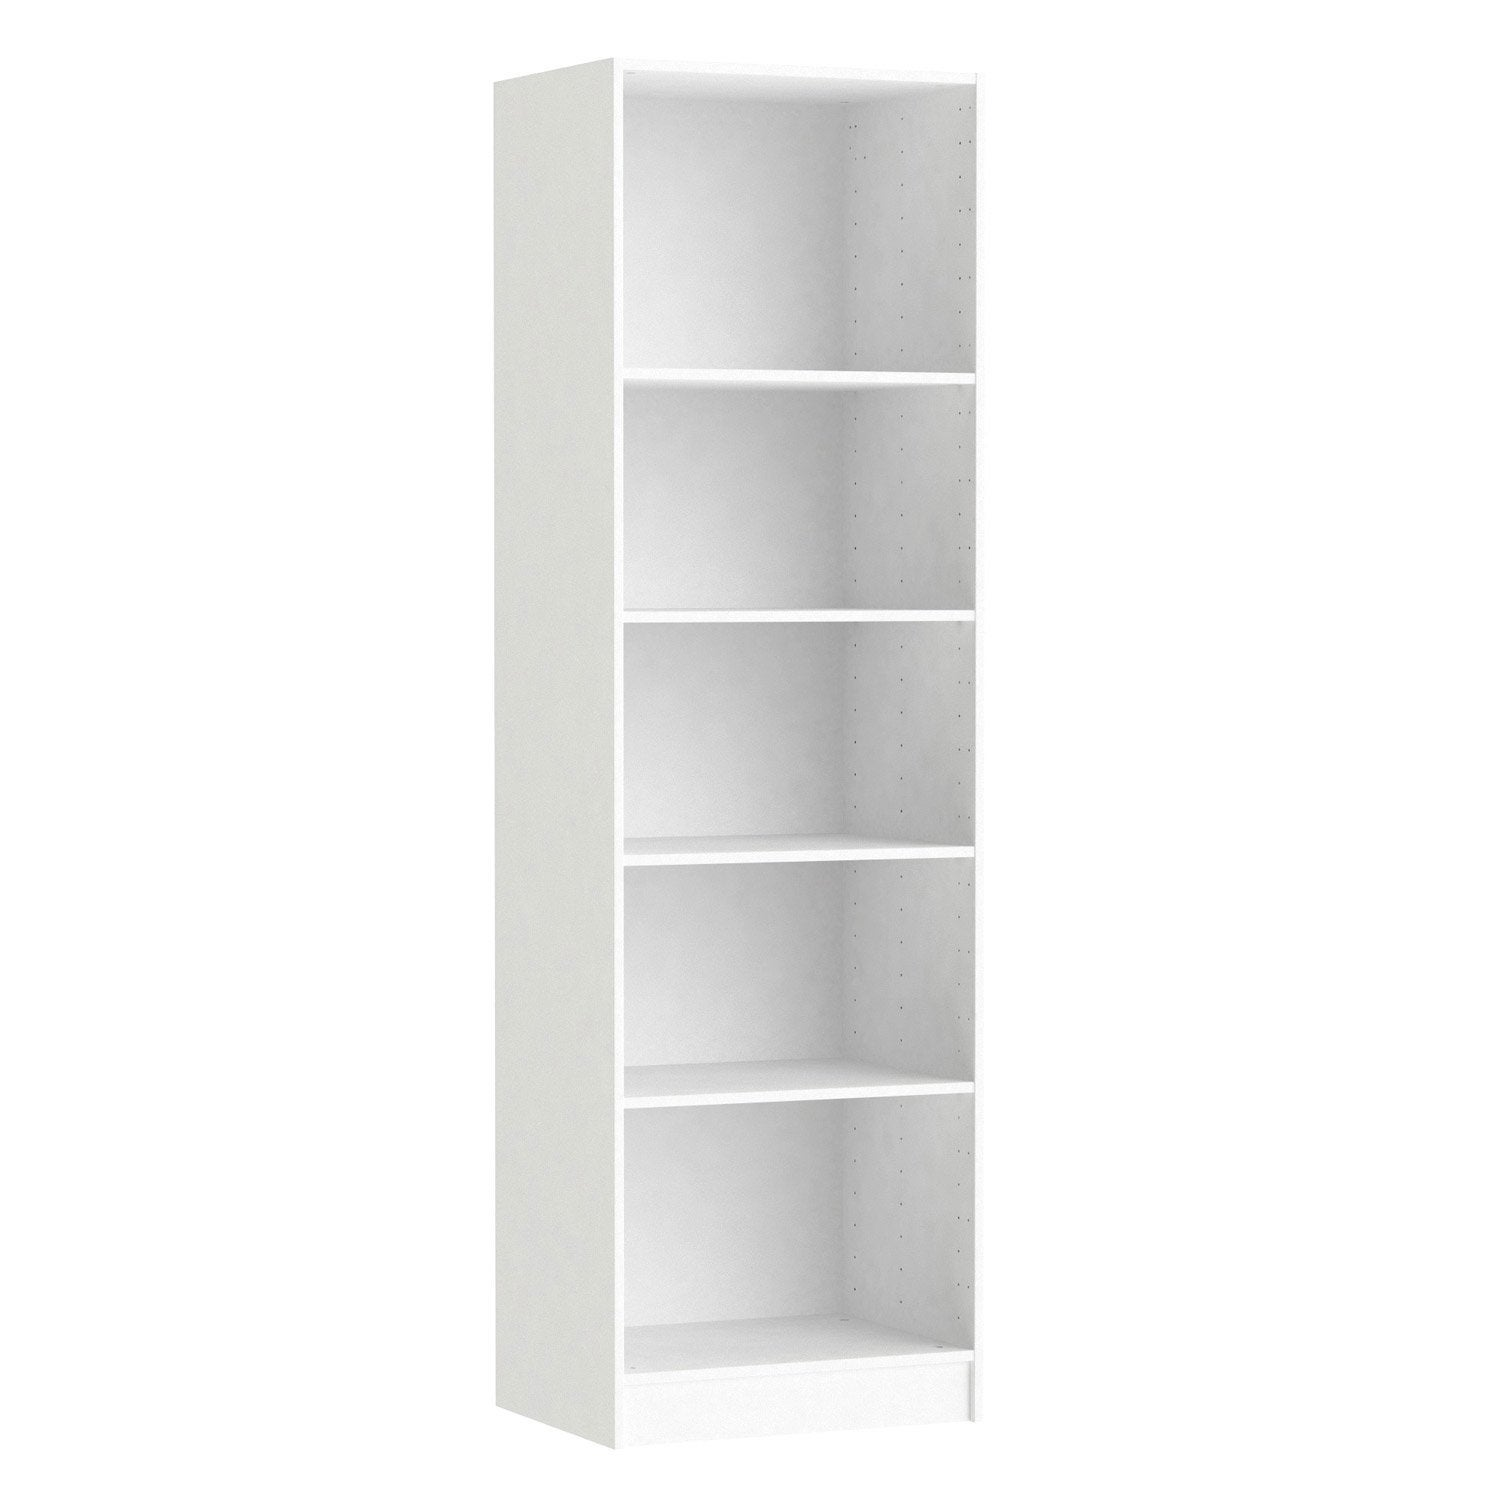 Caisson spaceo home 200 x 60 x 45 cm blanc leroy merlin - Caisson dressing castorama ...